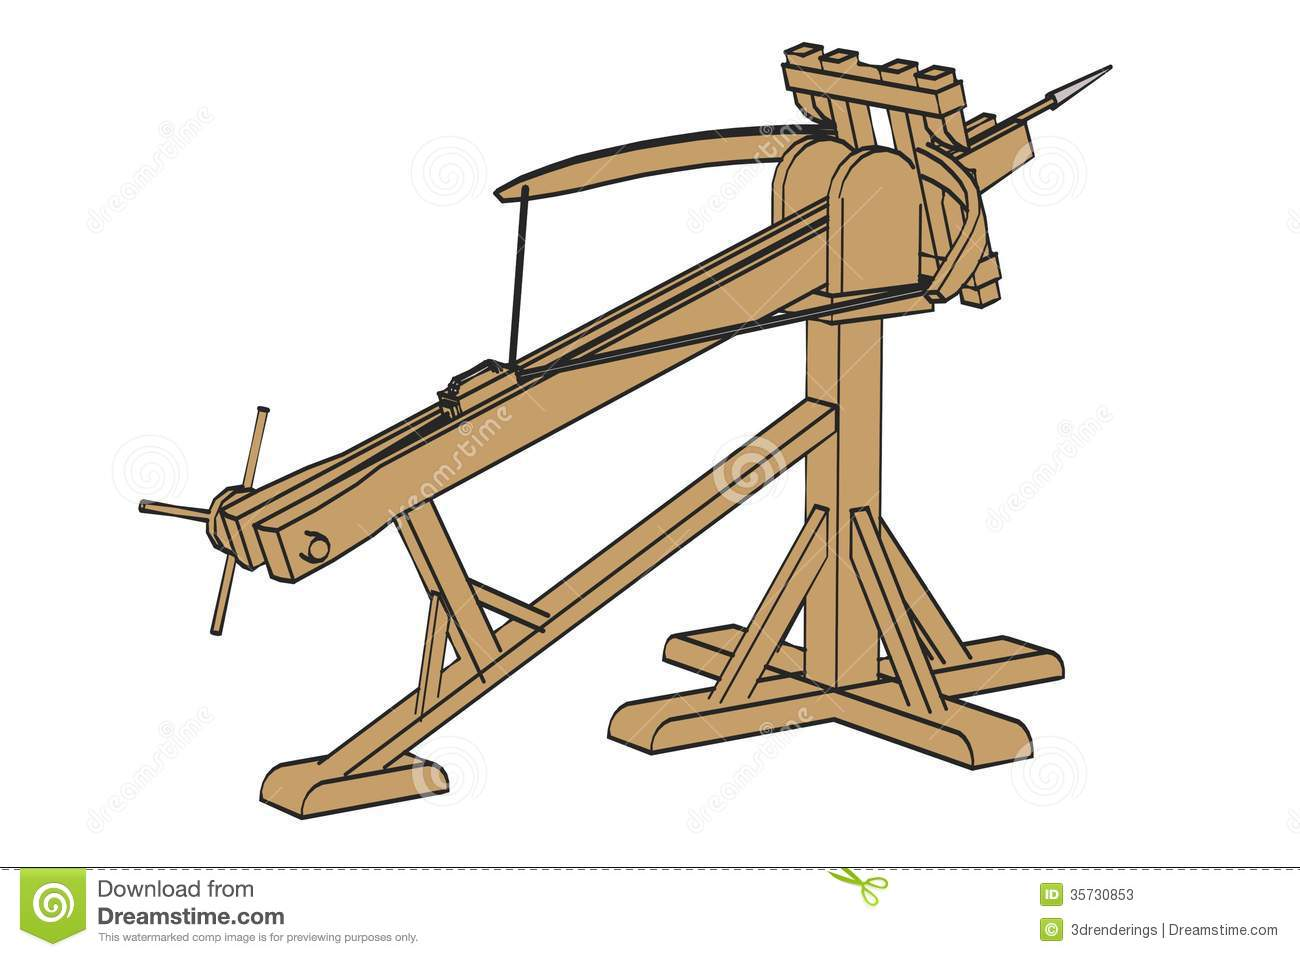 how to make a small catapult that shoots far